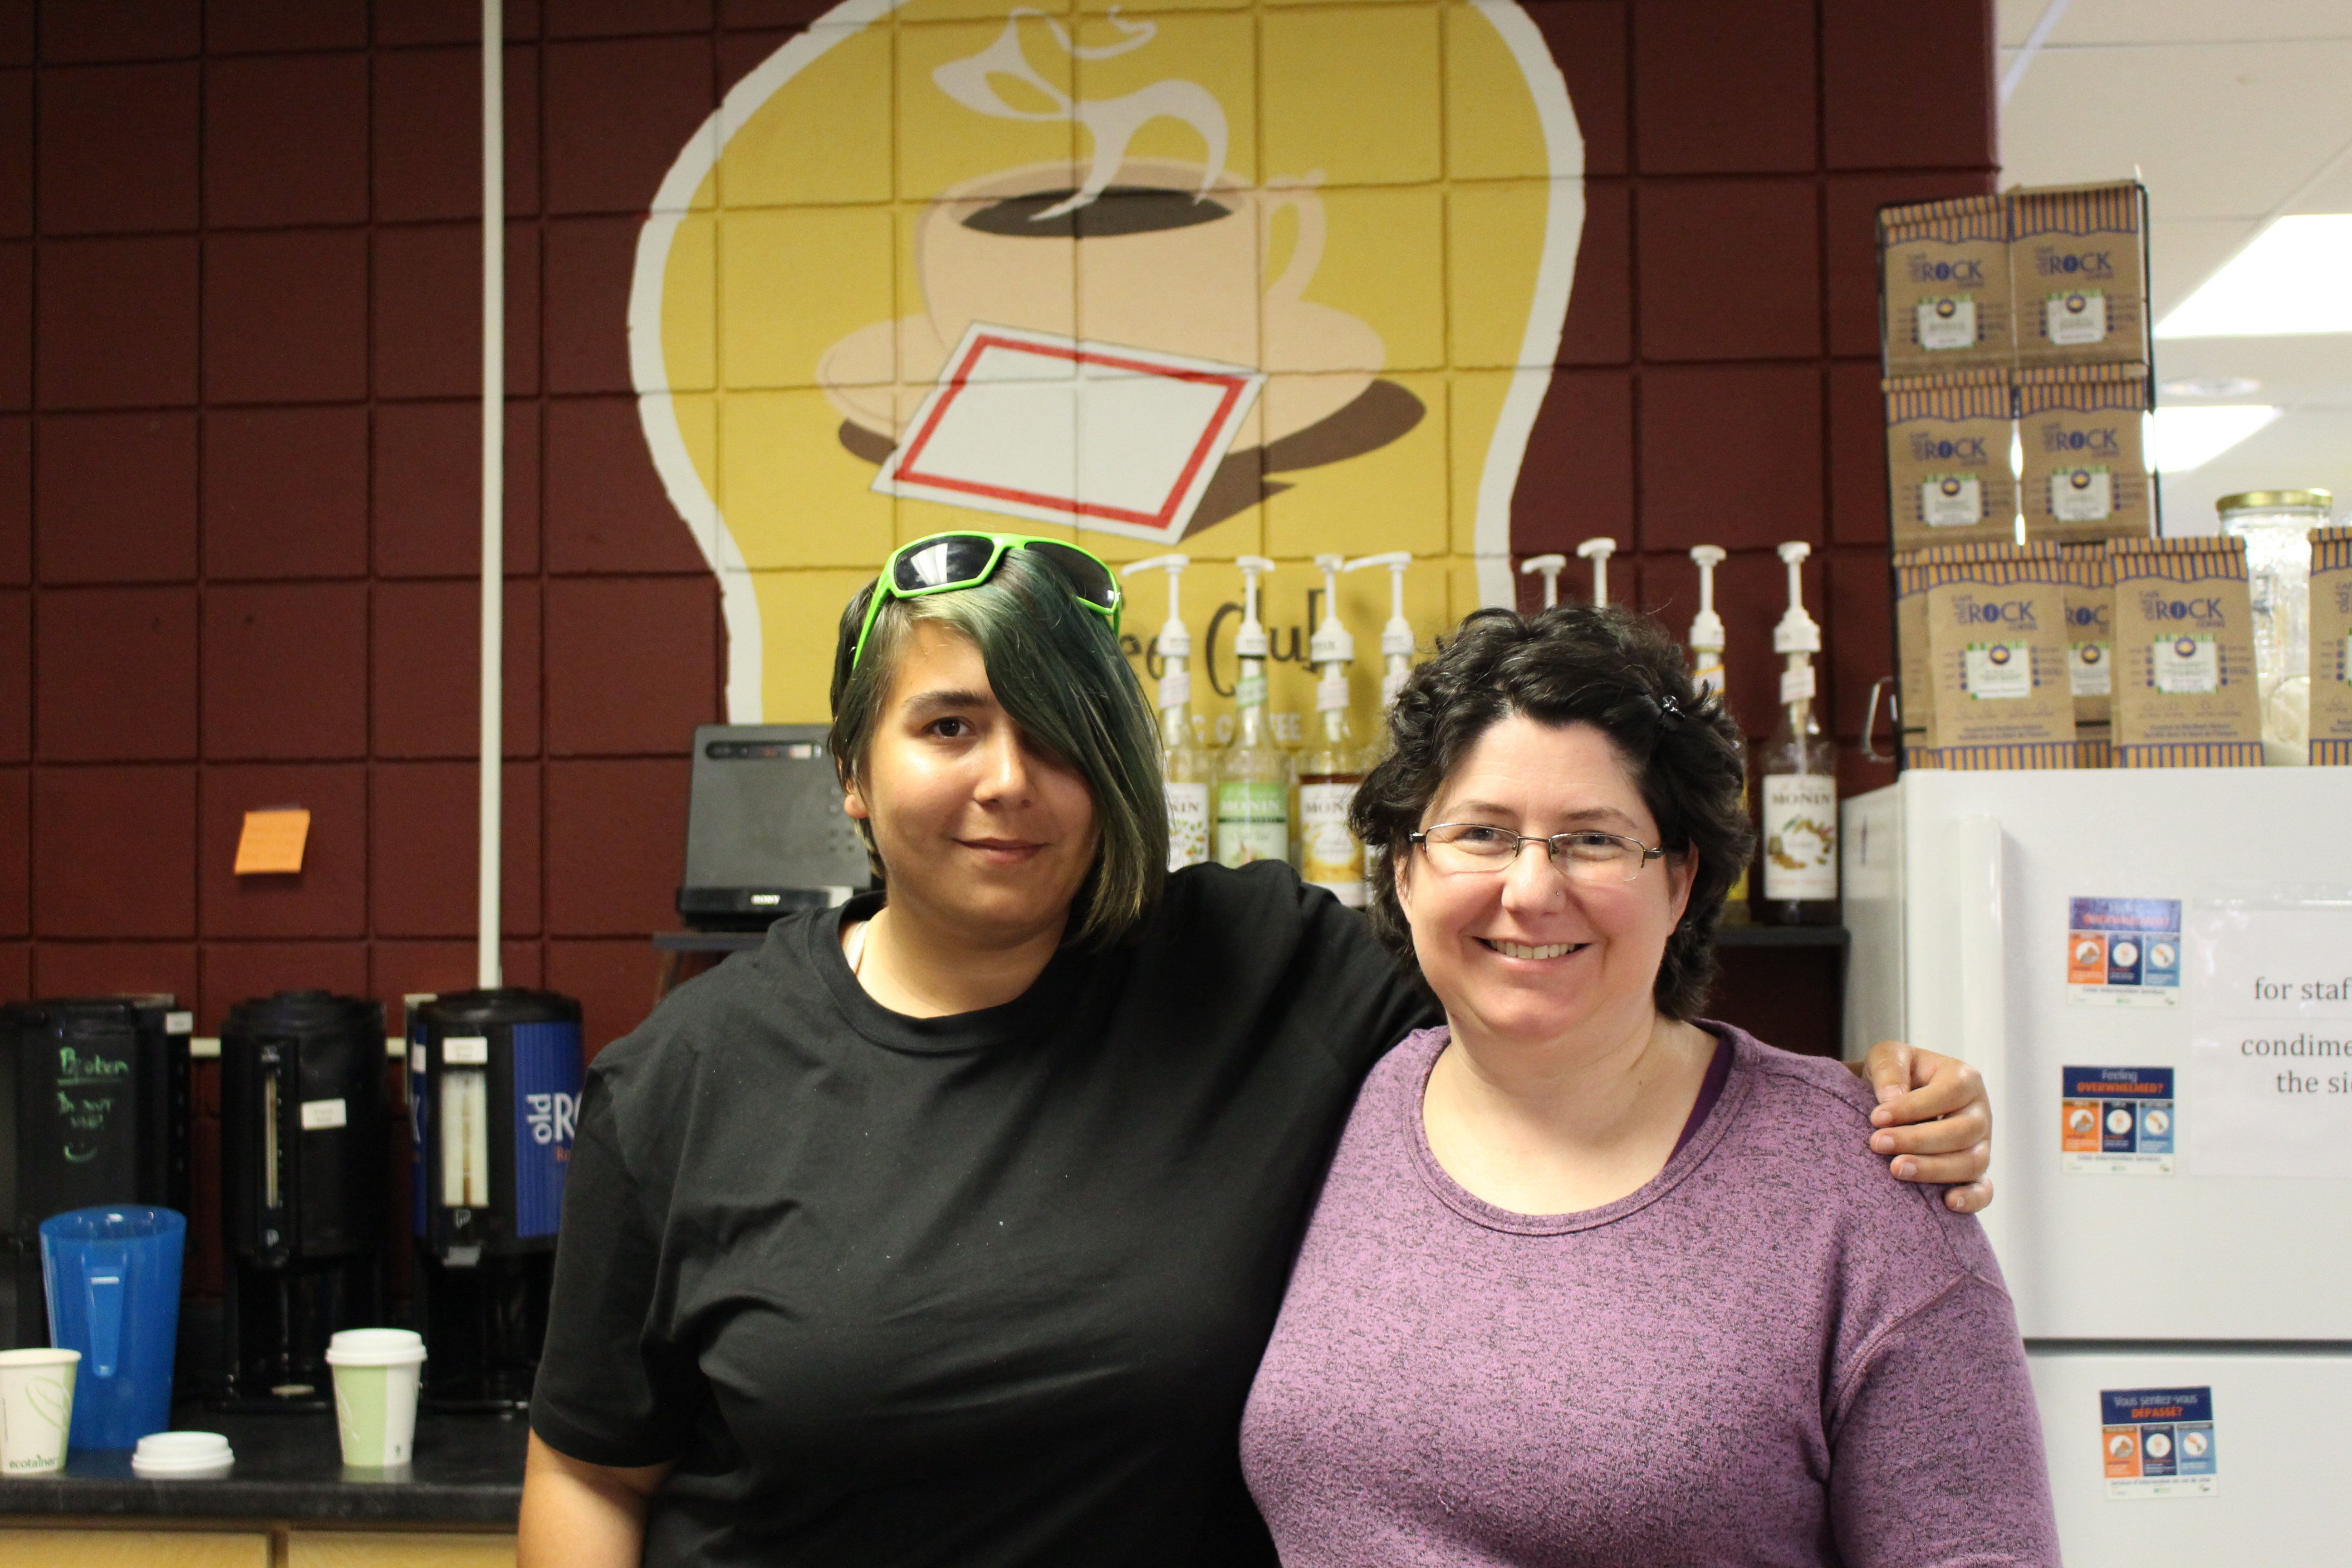 (From left) Tara Ward, Voyageur Cafe employee, and Lizette Frappier, Student Centre Manager, stand in the original cafe. Photo by Kayla Perry.